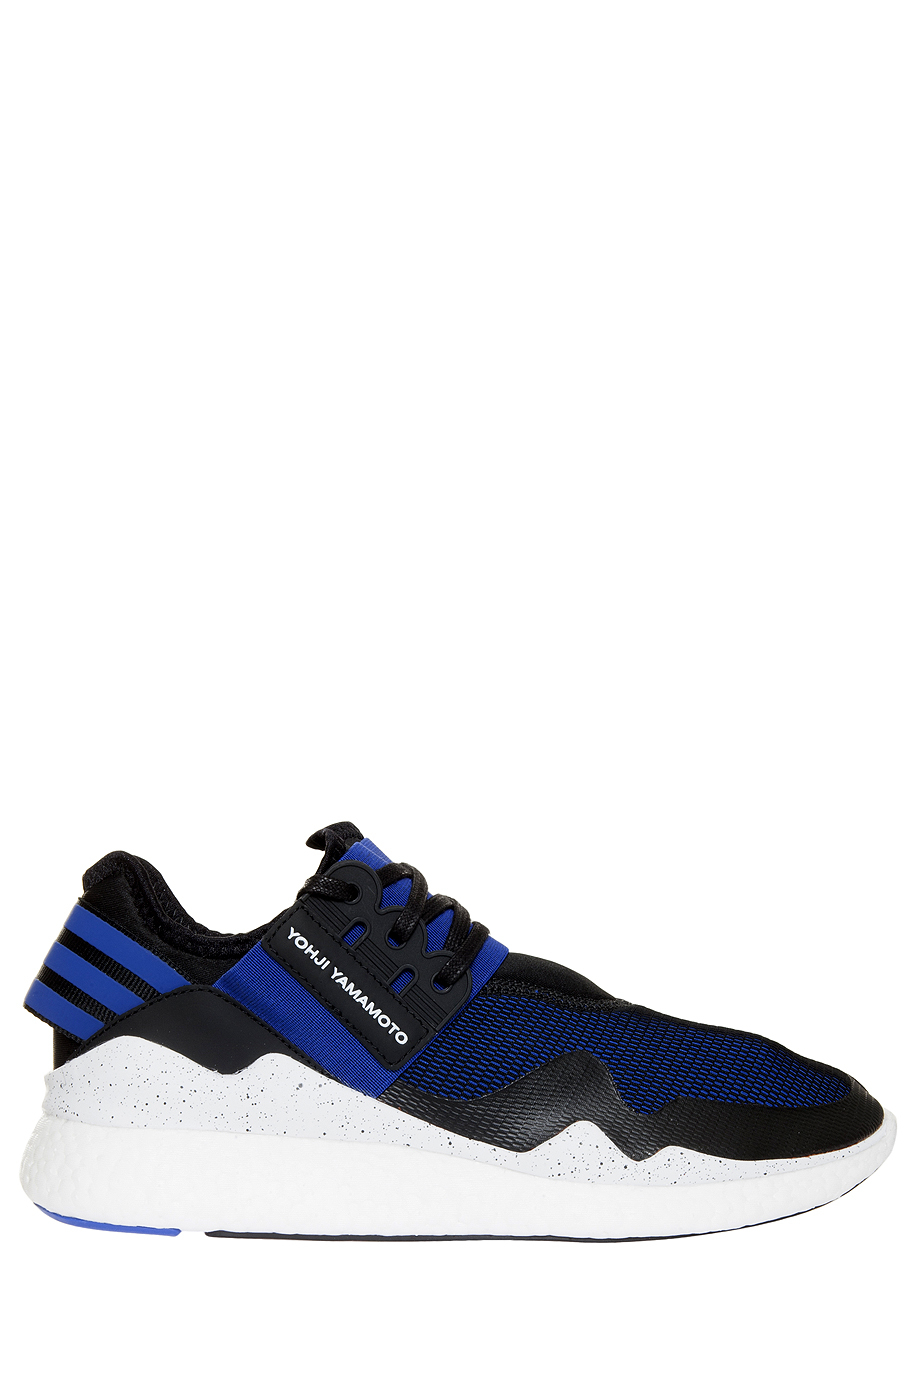 y 3 retro boost trainers in blue for men black save 50. Black Bedroom Furniture Sets. Home Design Ideas